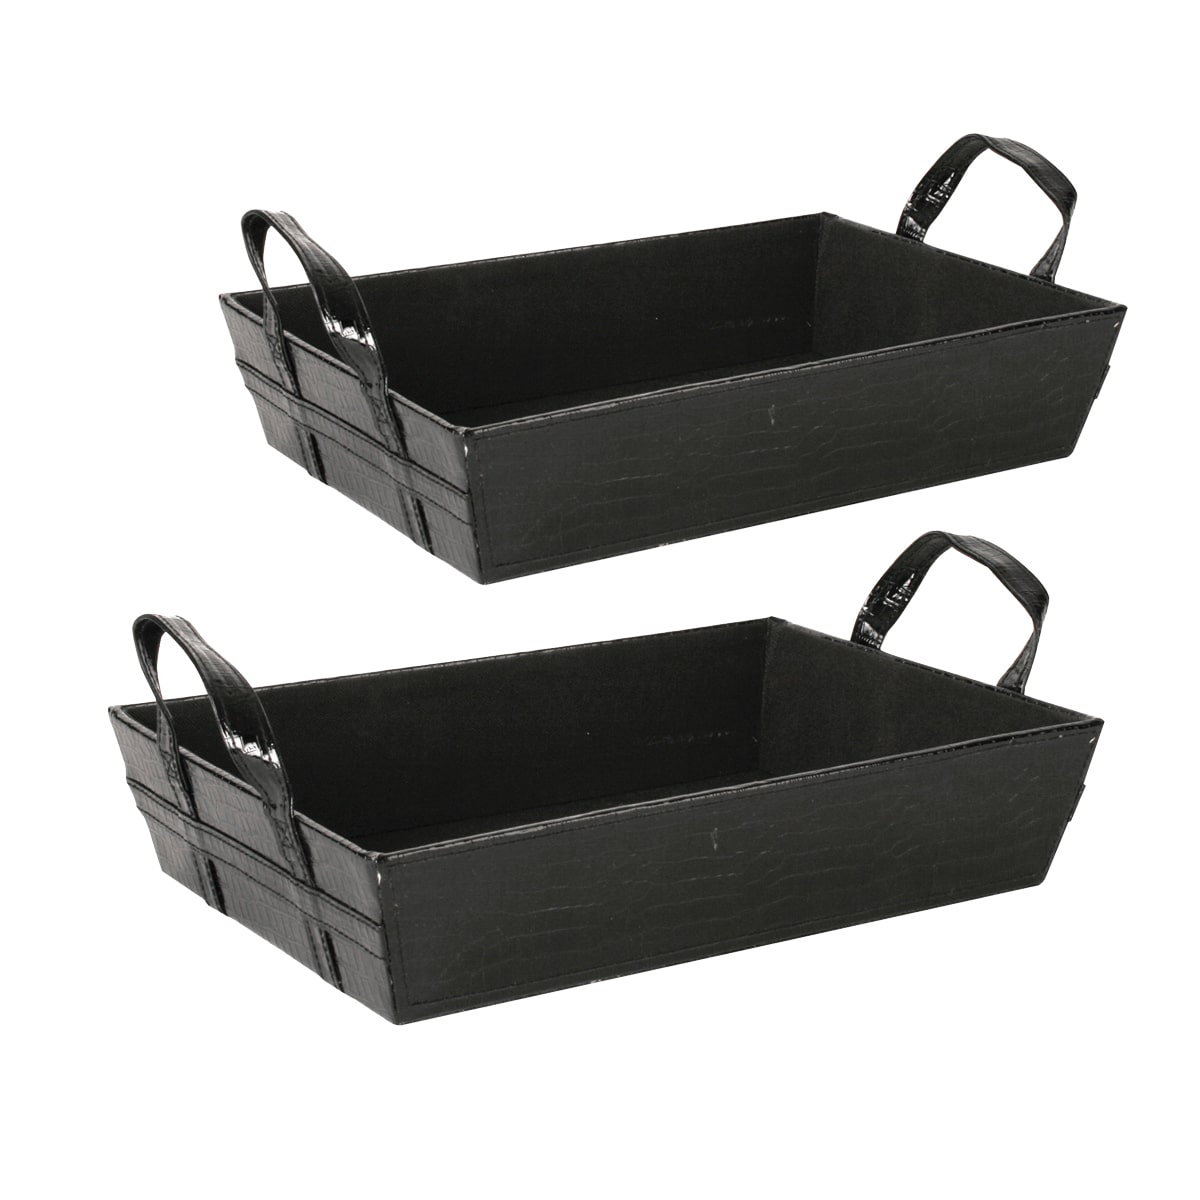 9108-BLK 14. 5 inch Black Faux Leather Tray - Includes 3 pieces